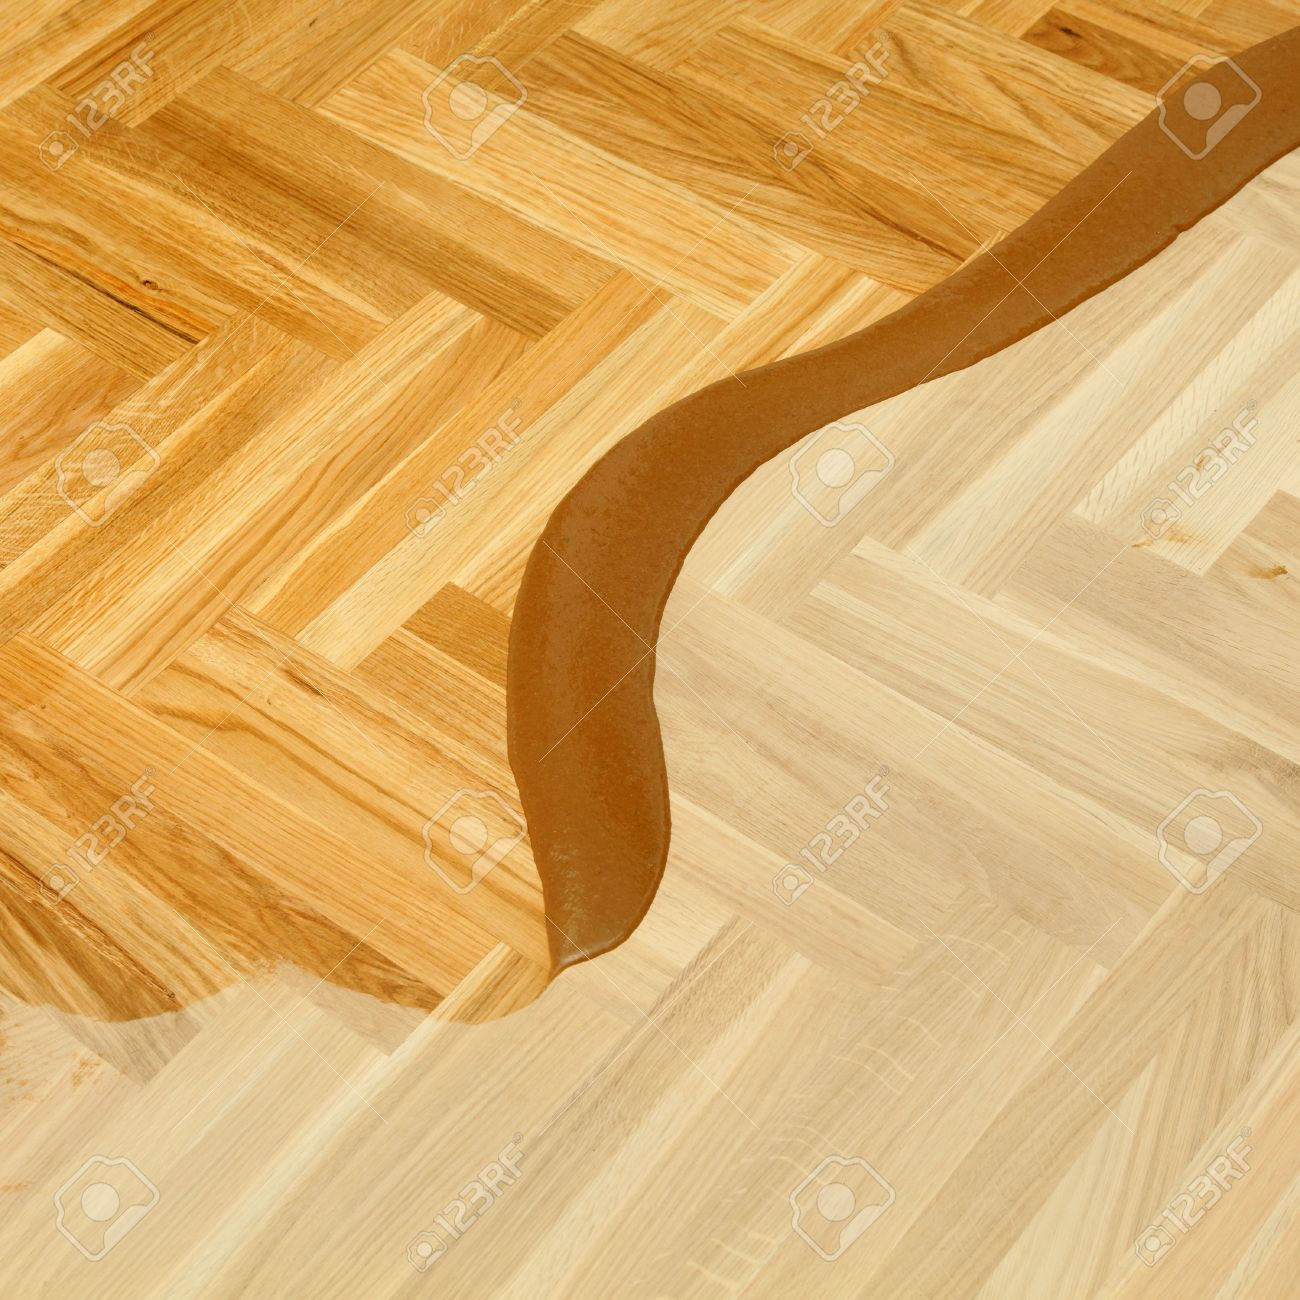 Varnishing Of Oak Parquet Floor First Layer Of Lacquer Stock